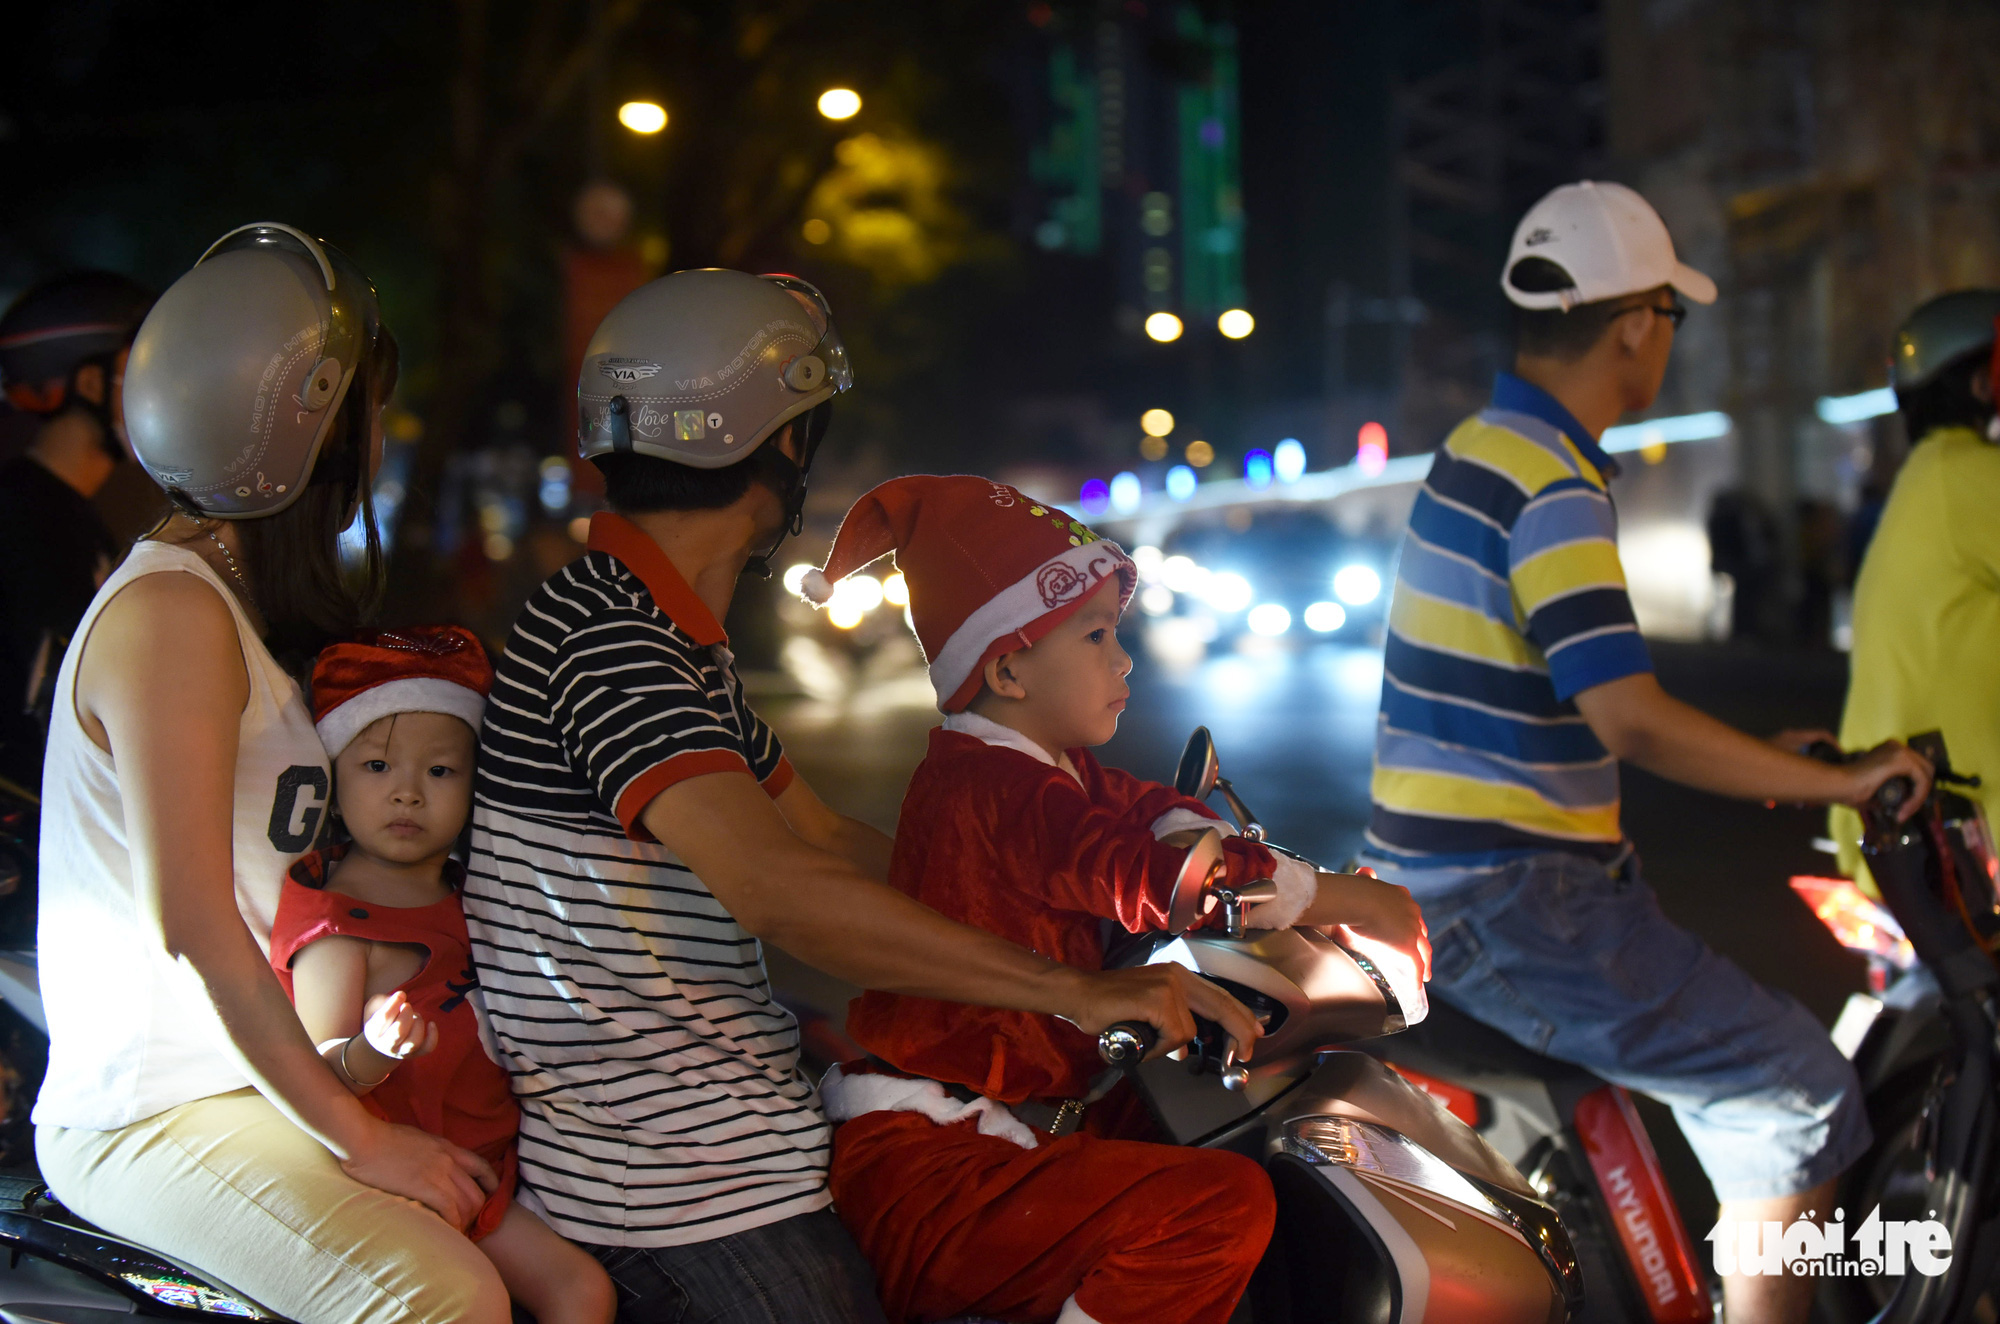 A man carries his family members on a motorbike to celebrate Christmas Eve in downtown Ho Chi Minh City on December 24, 2019.